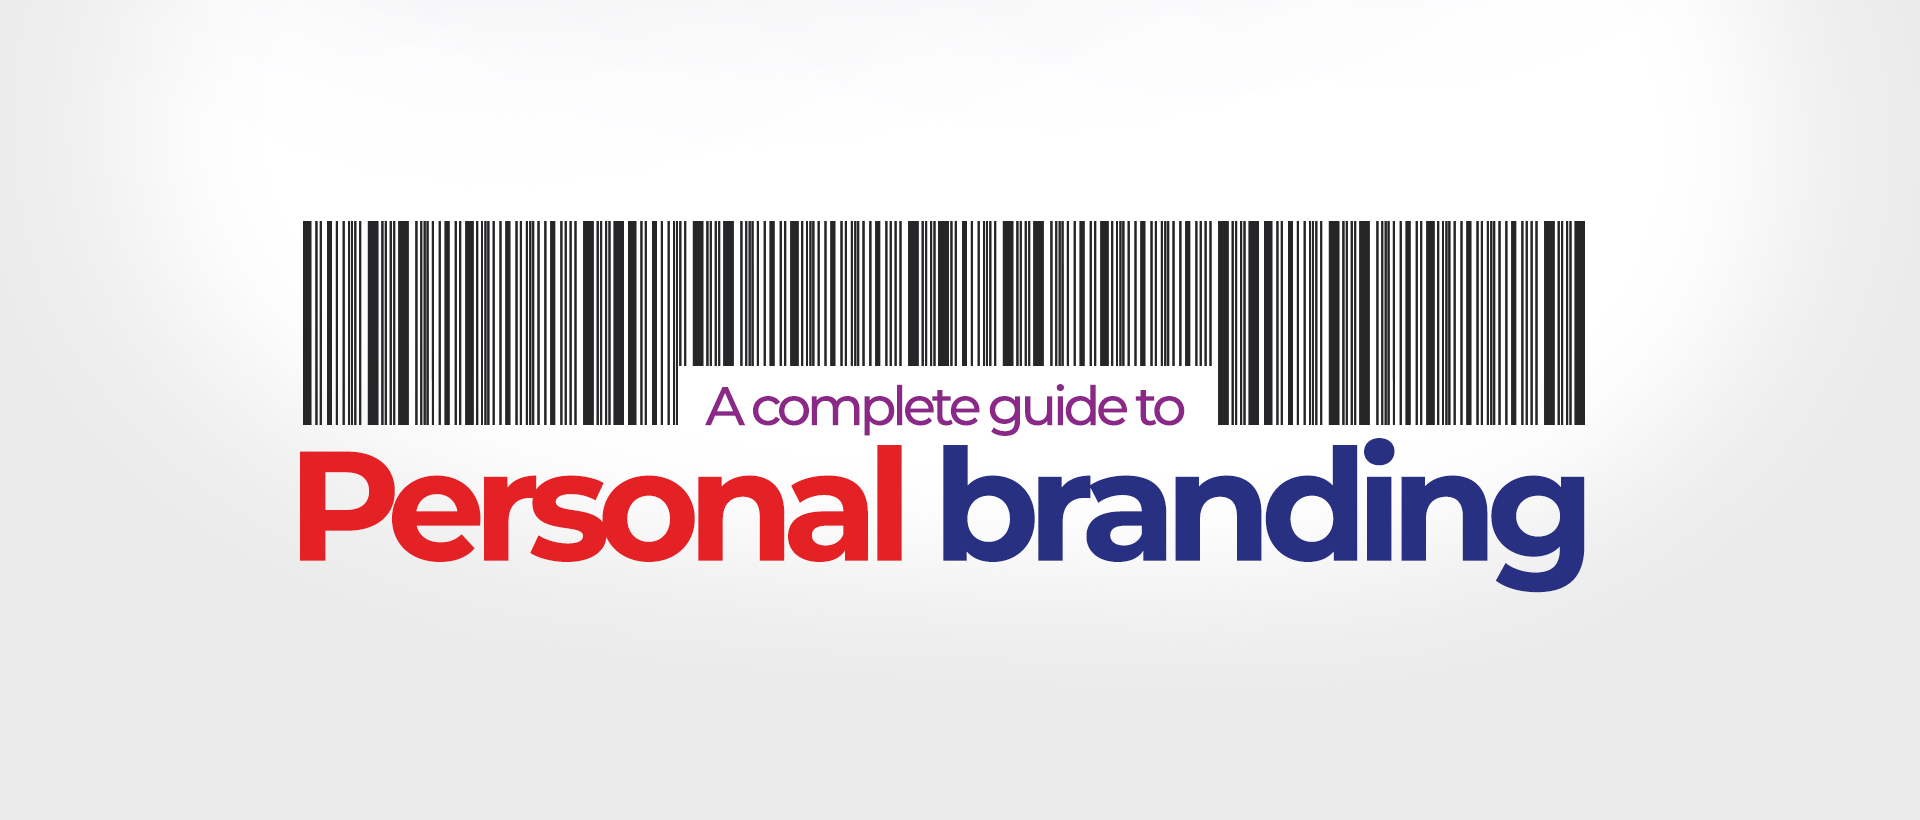 A complete guide to personal branding